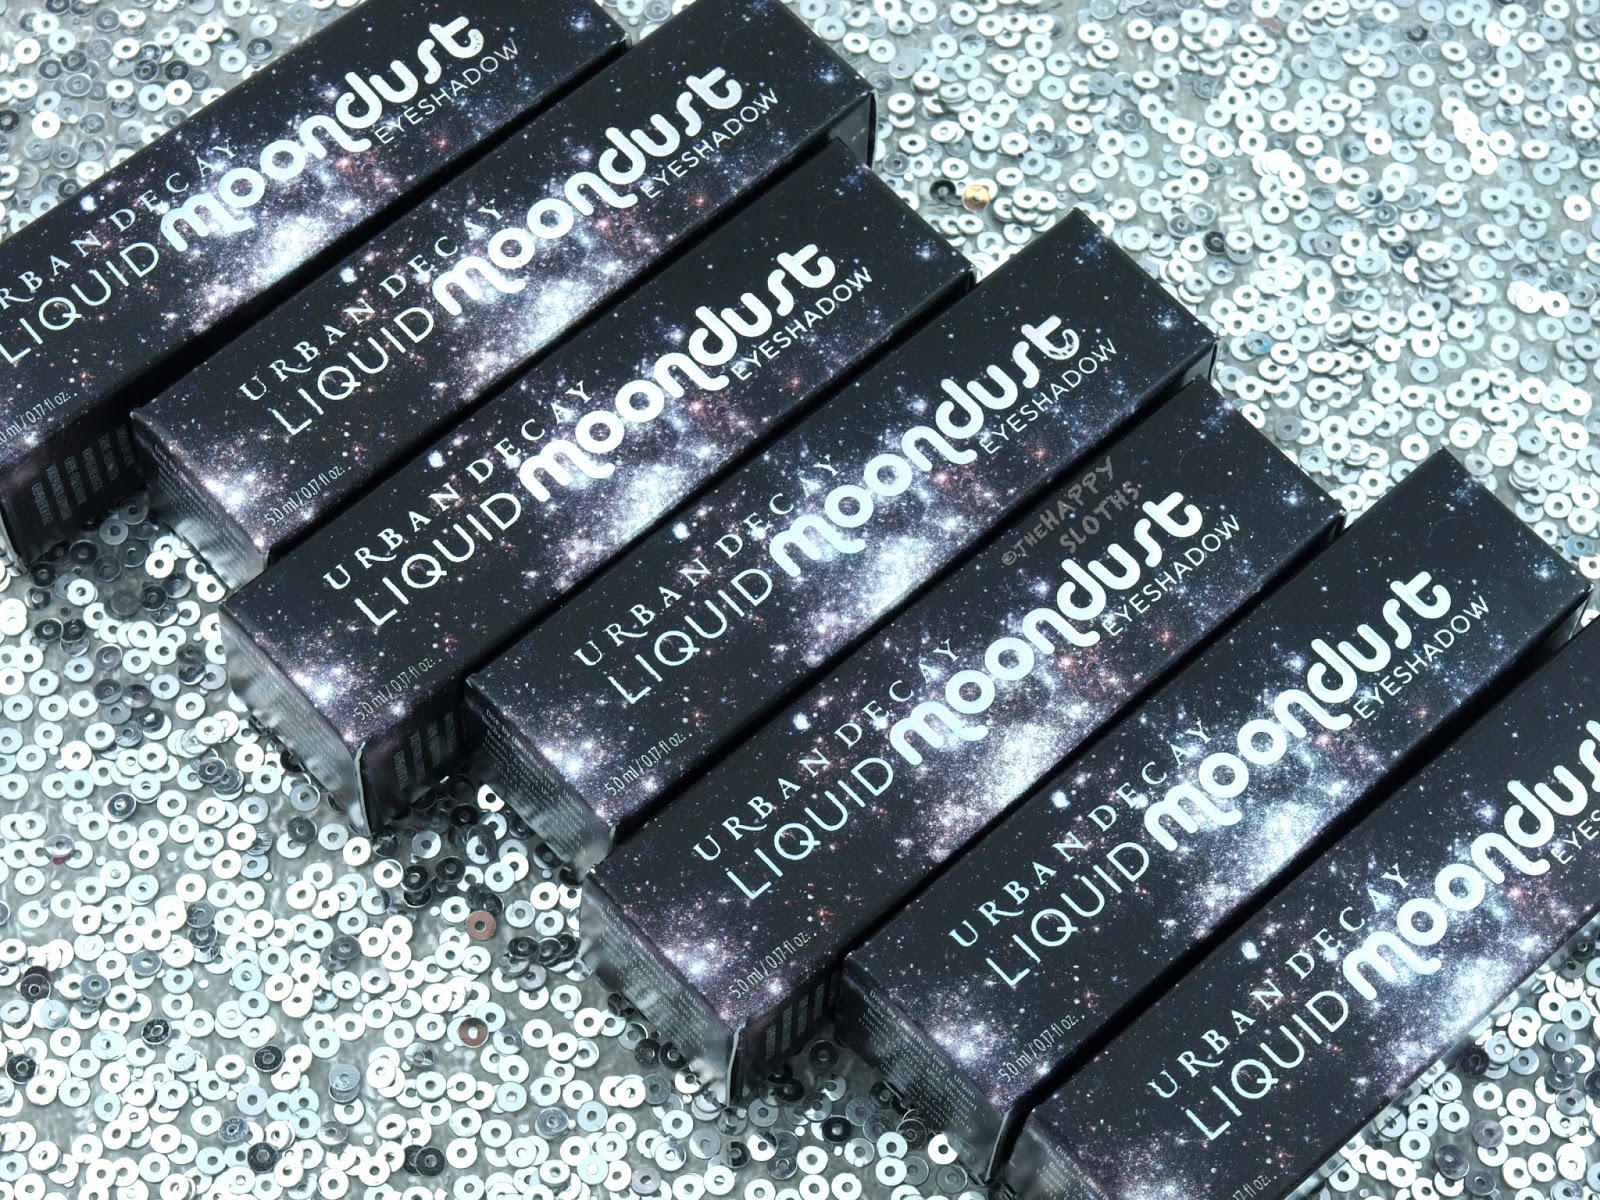 Urban Decay Liquid Moondust Eyeshadow Review and Swatches